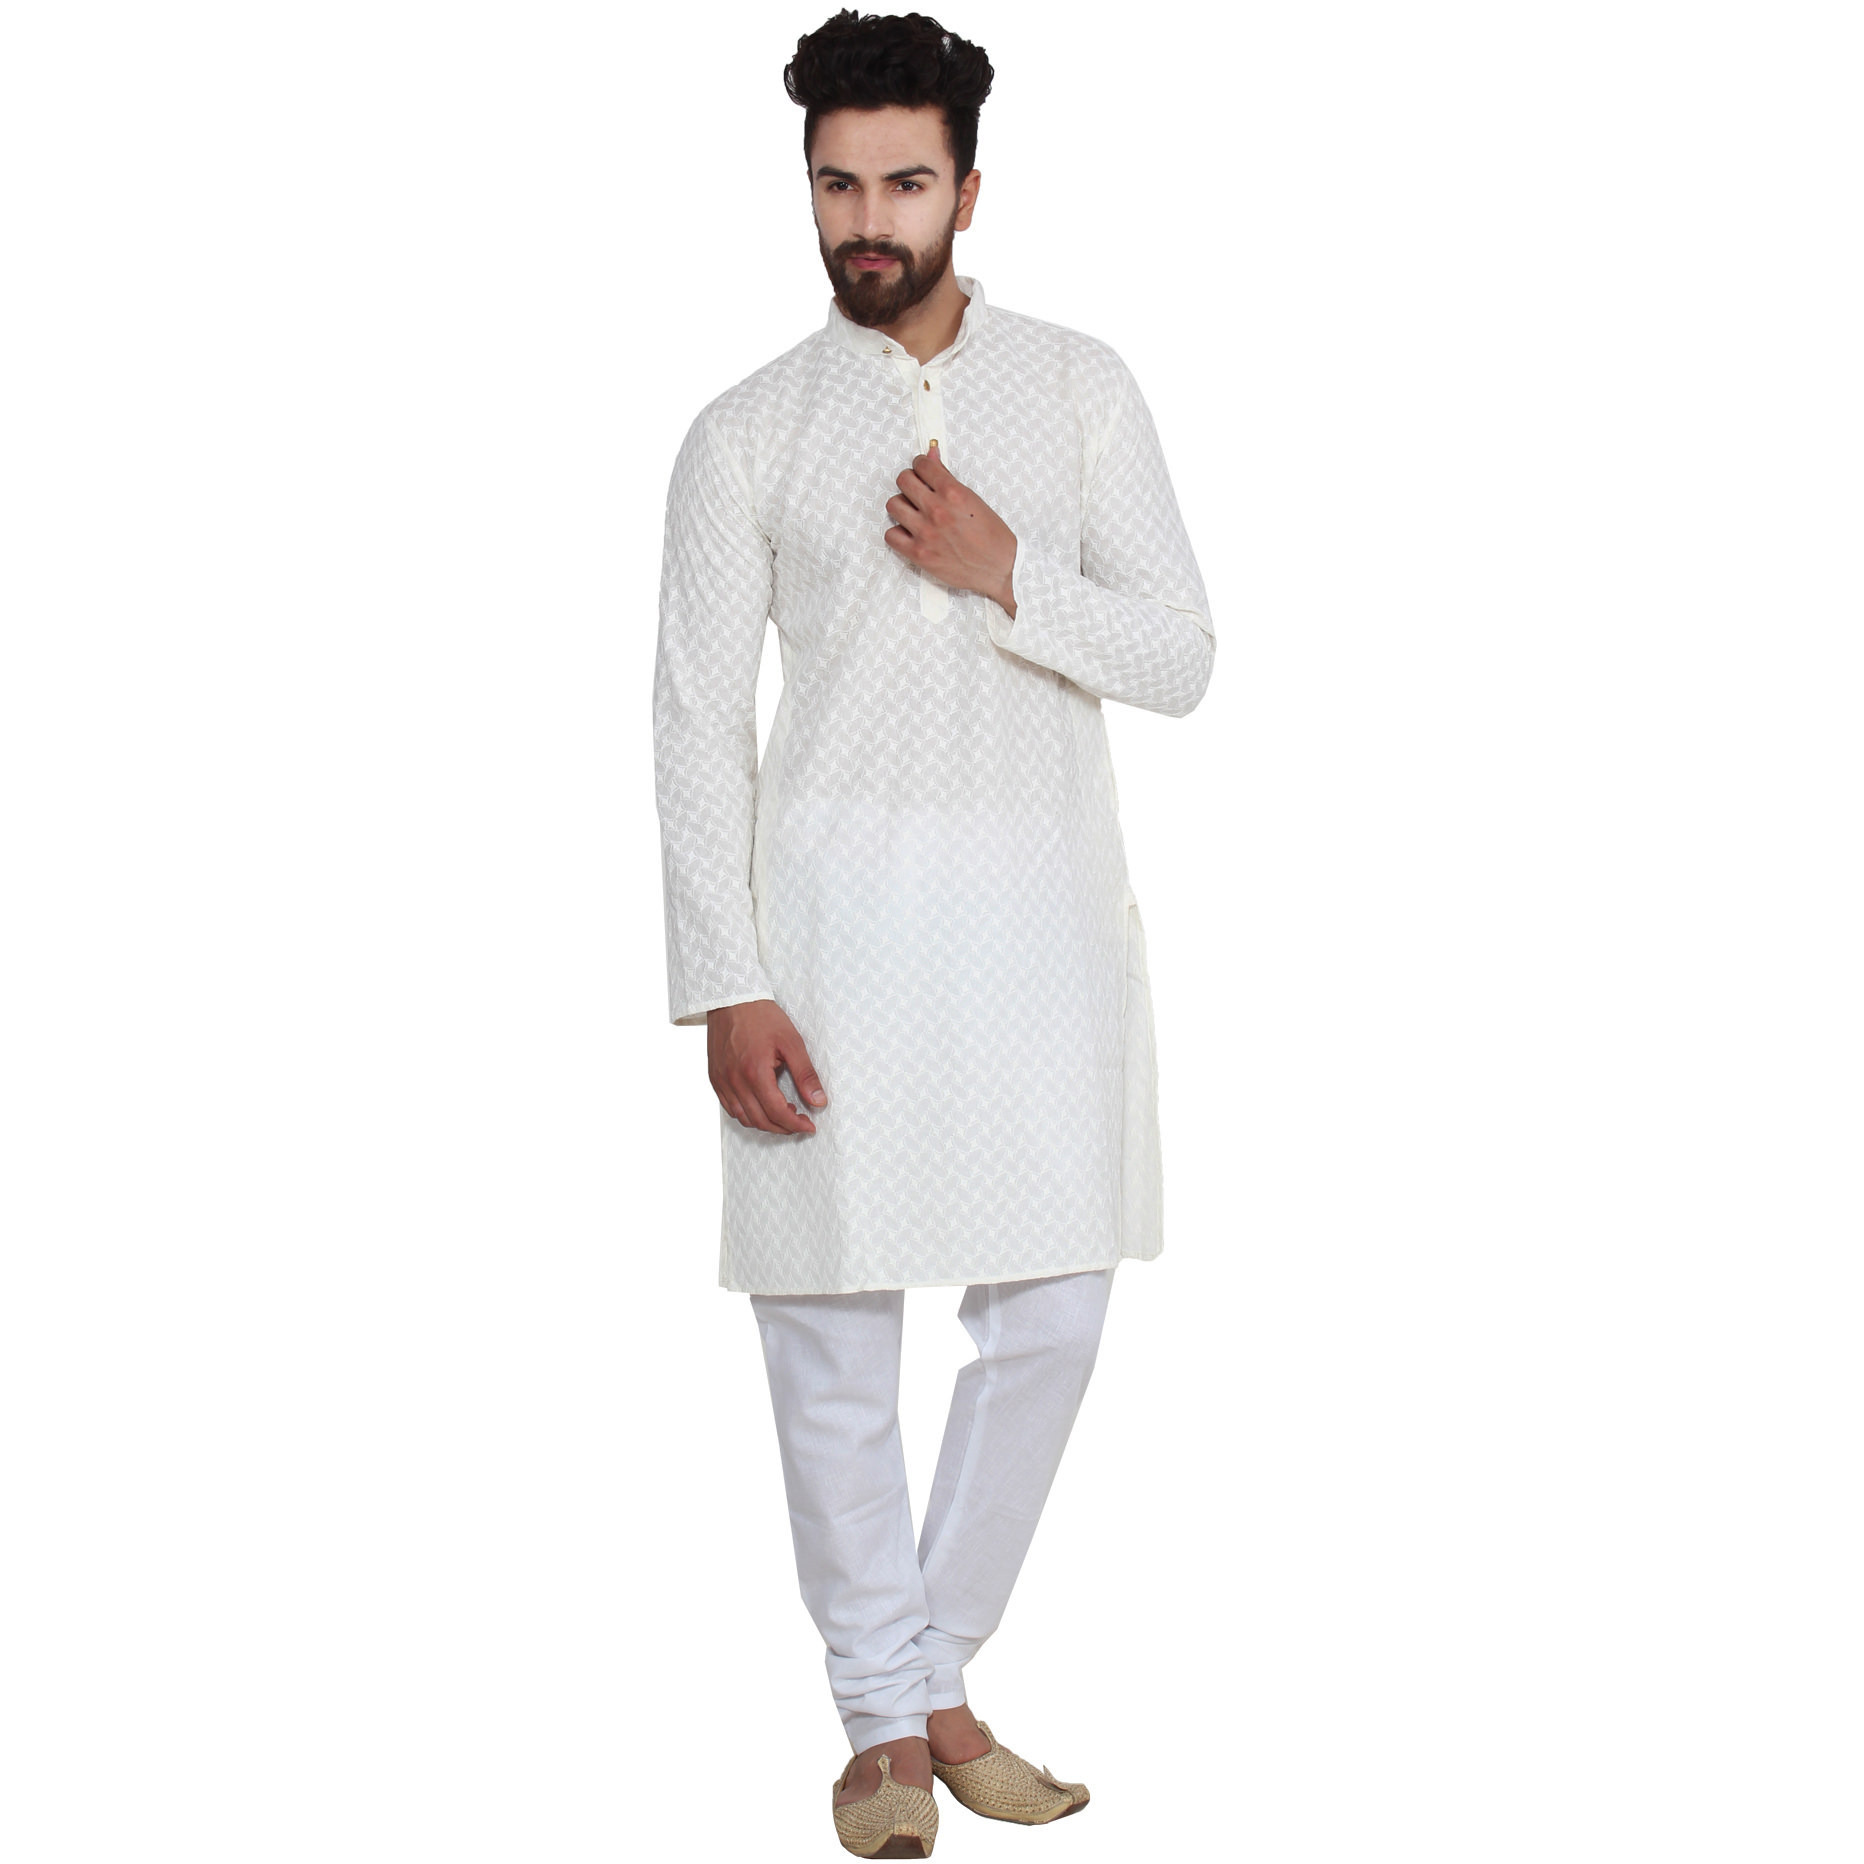 Mens Silk Cream Self design emroidery Designer Kurta Churidaar Set Long Sleeve Ban collar Regular Fit